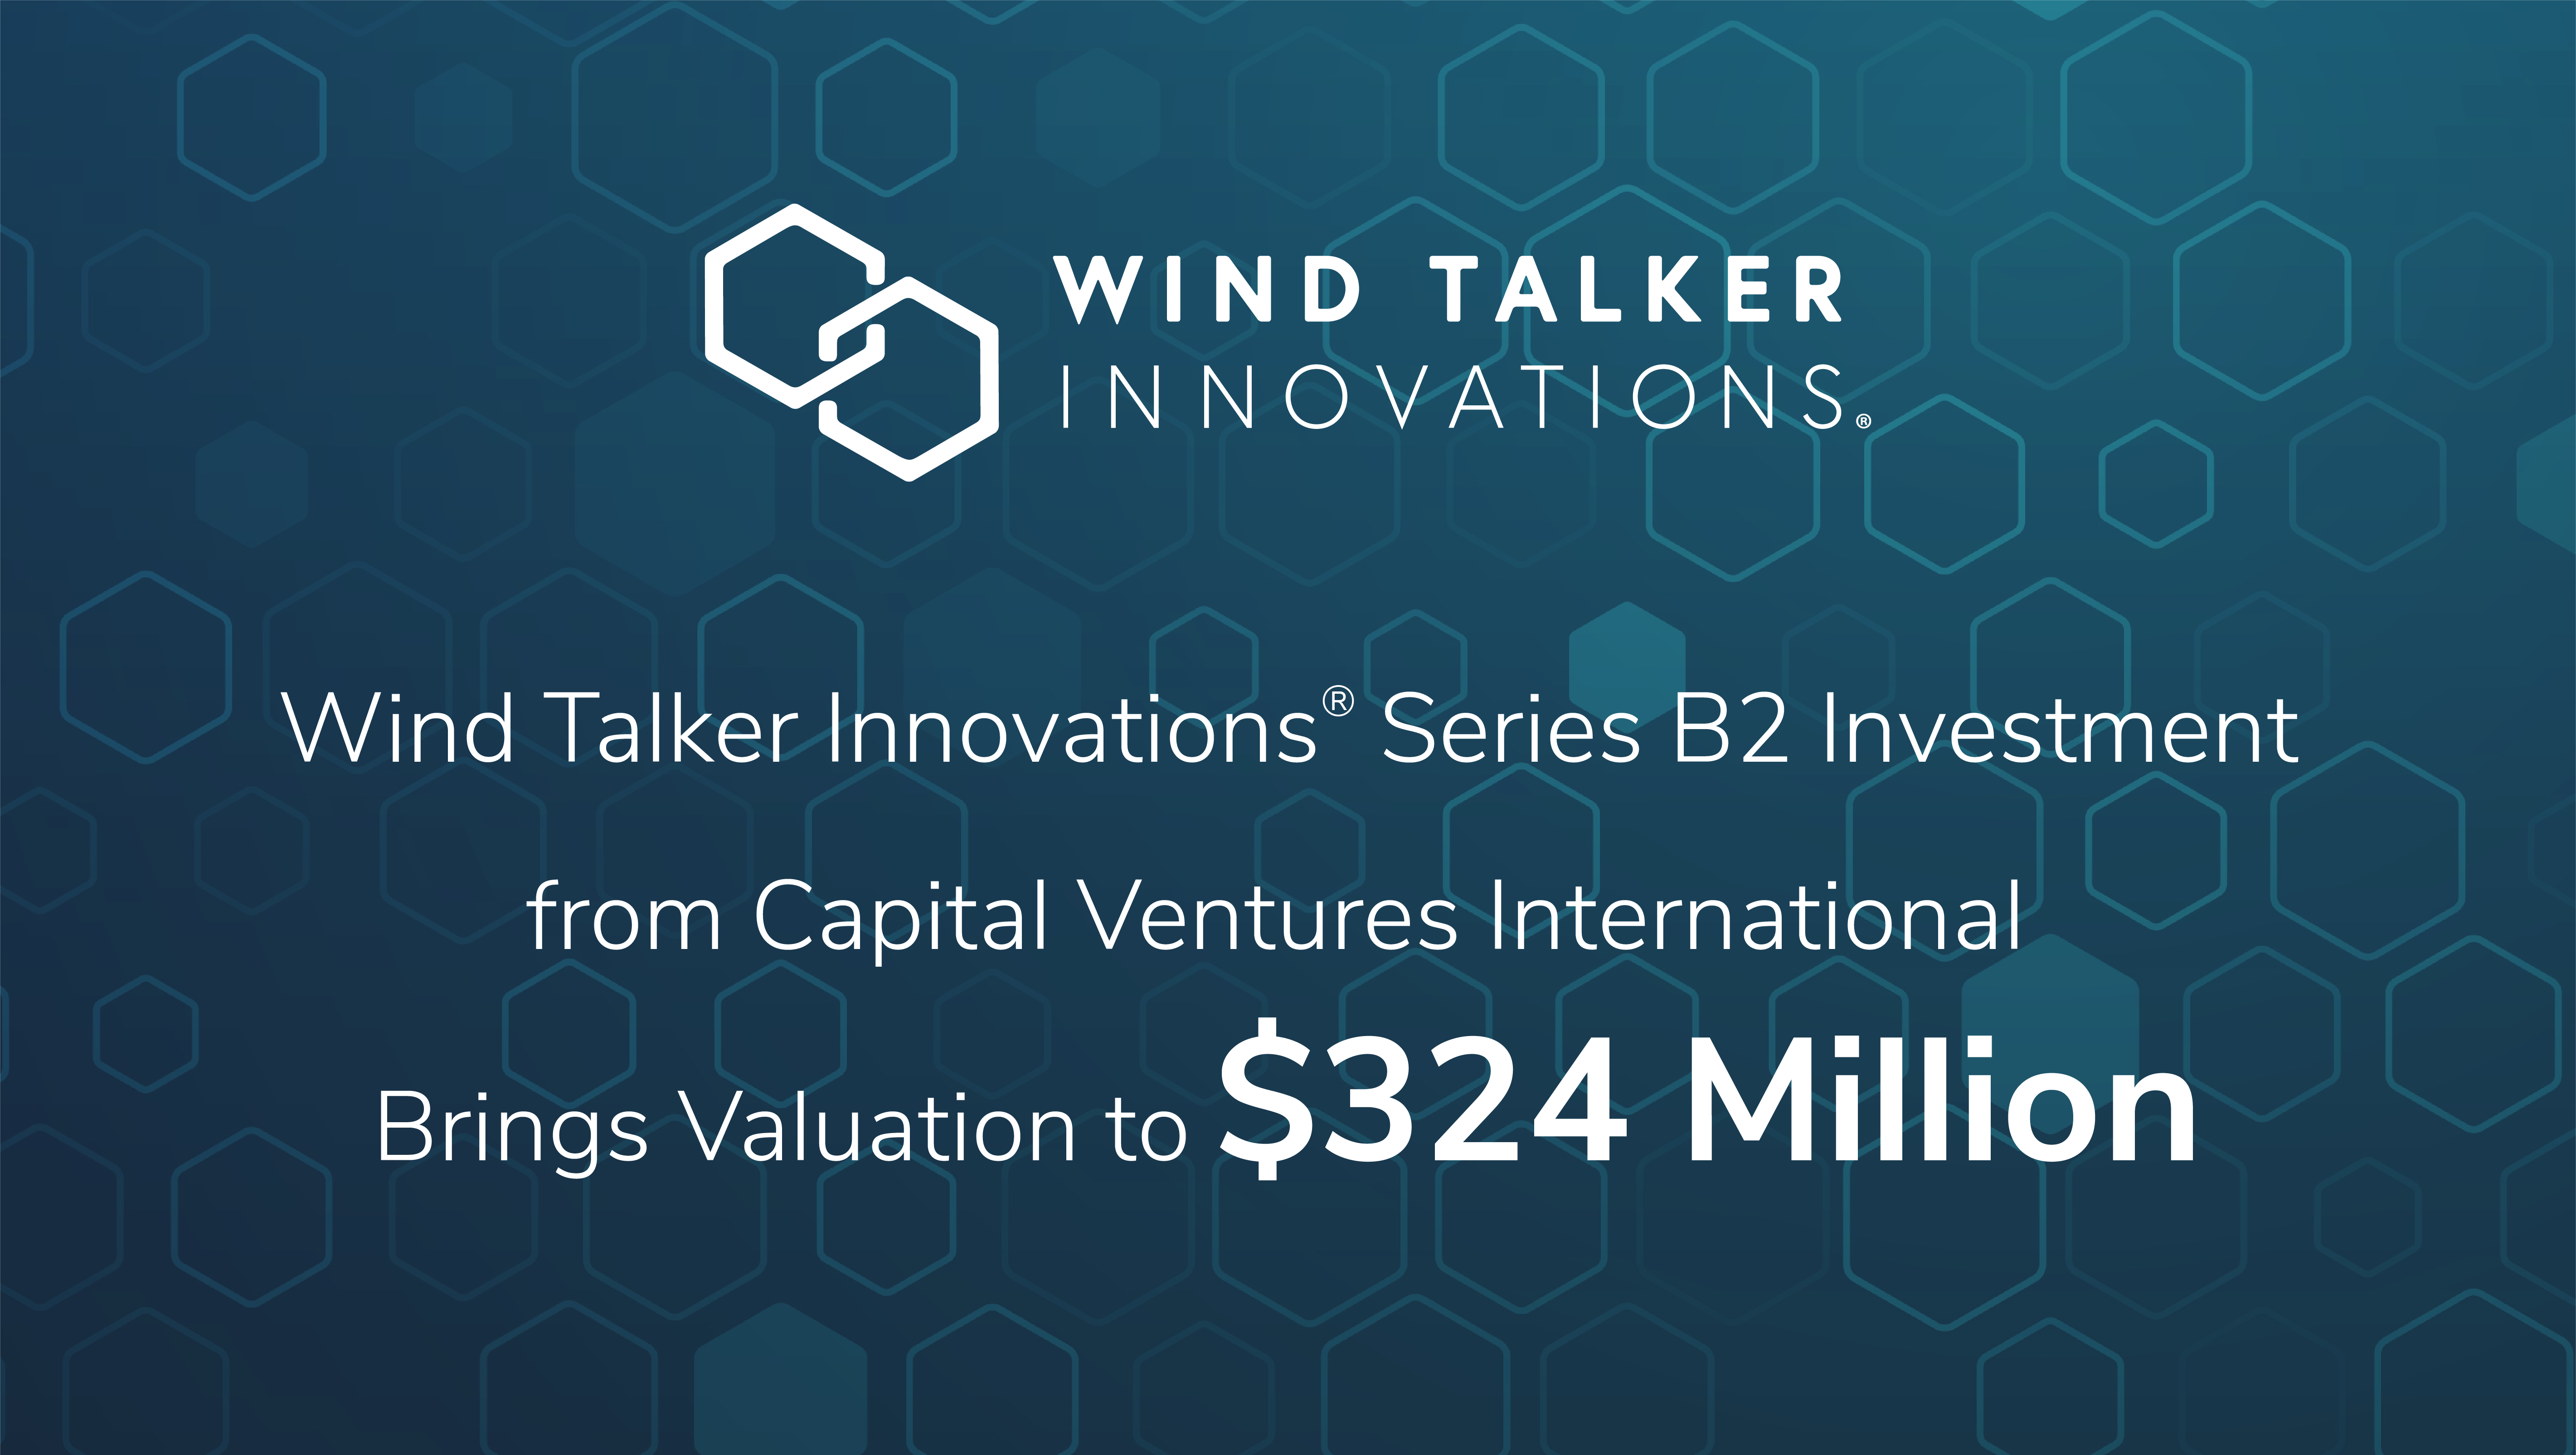 Wind Talker Innovations® Series B2 Investment from Capital Ventures International Brings Valuation to $324 Million